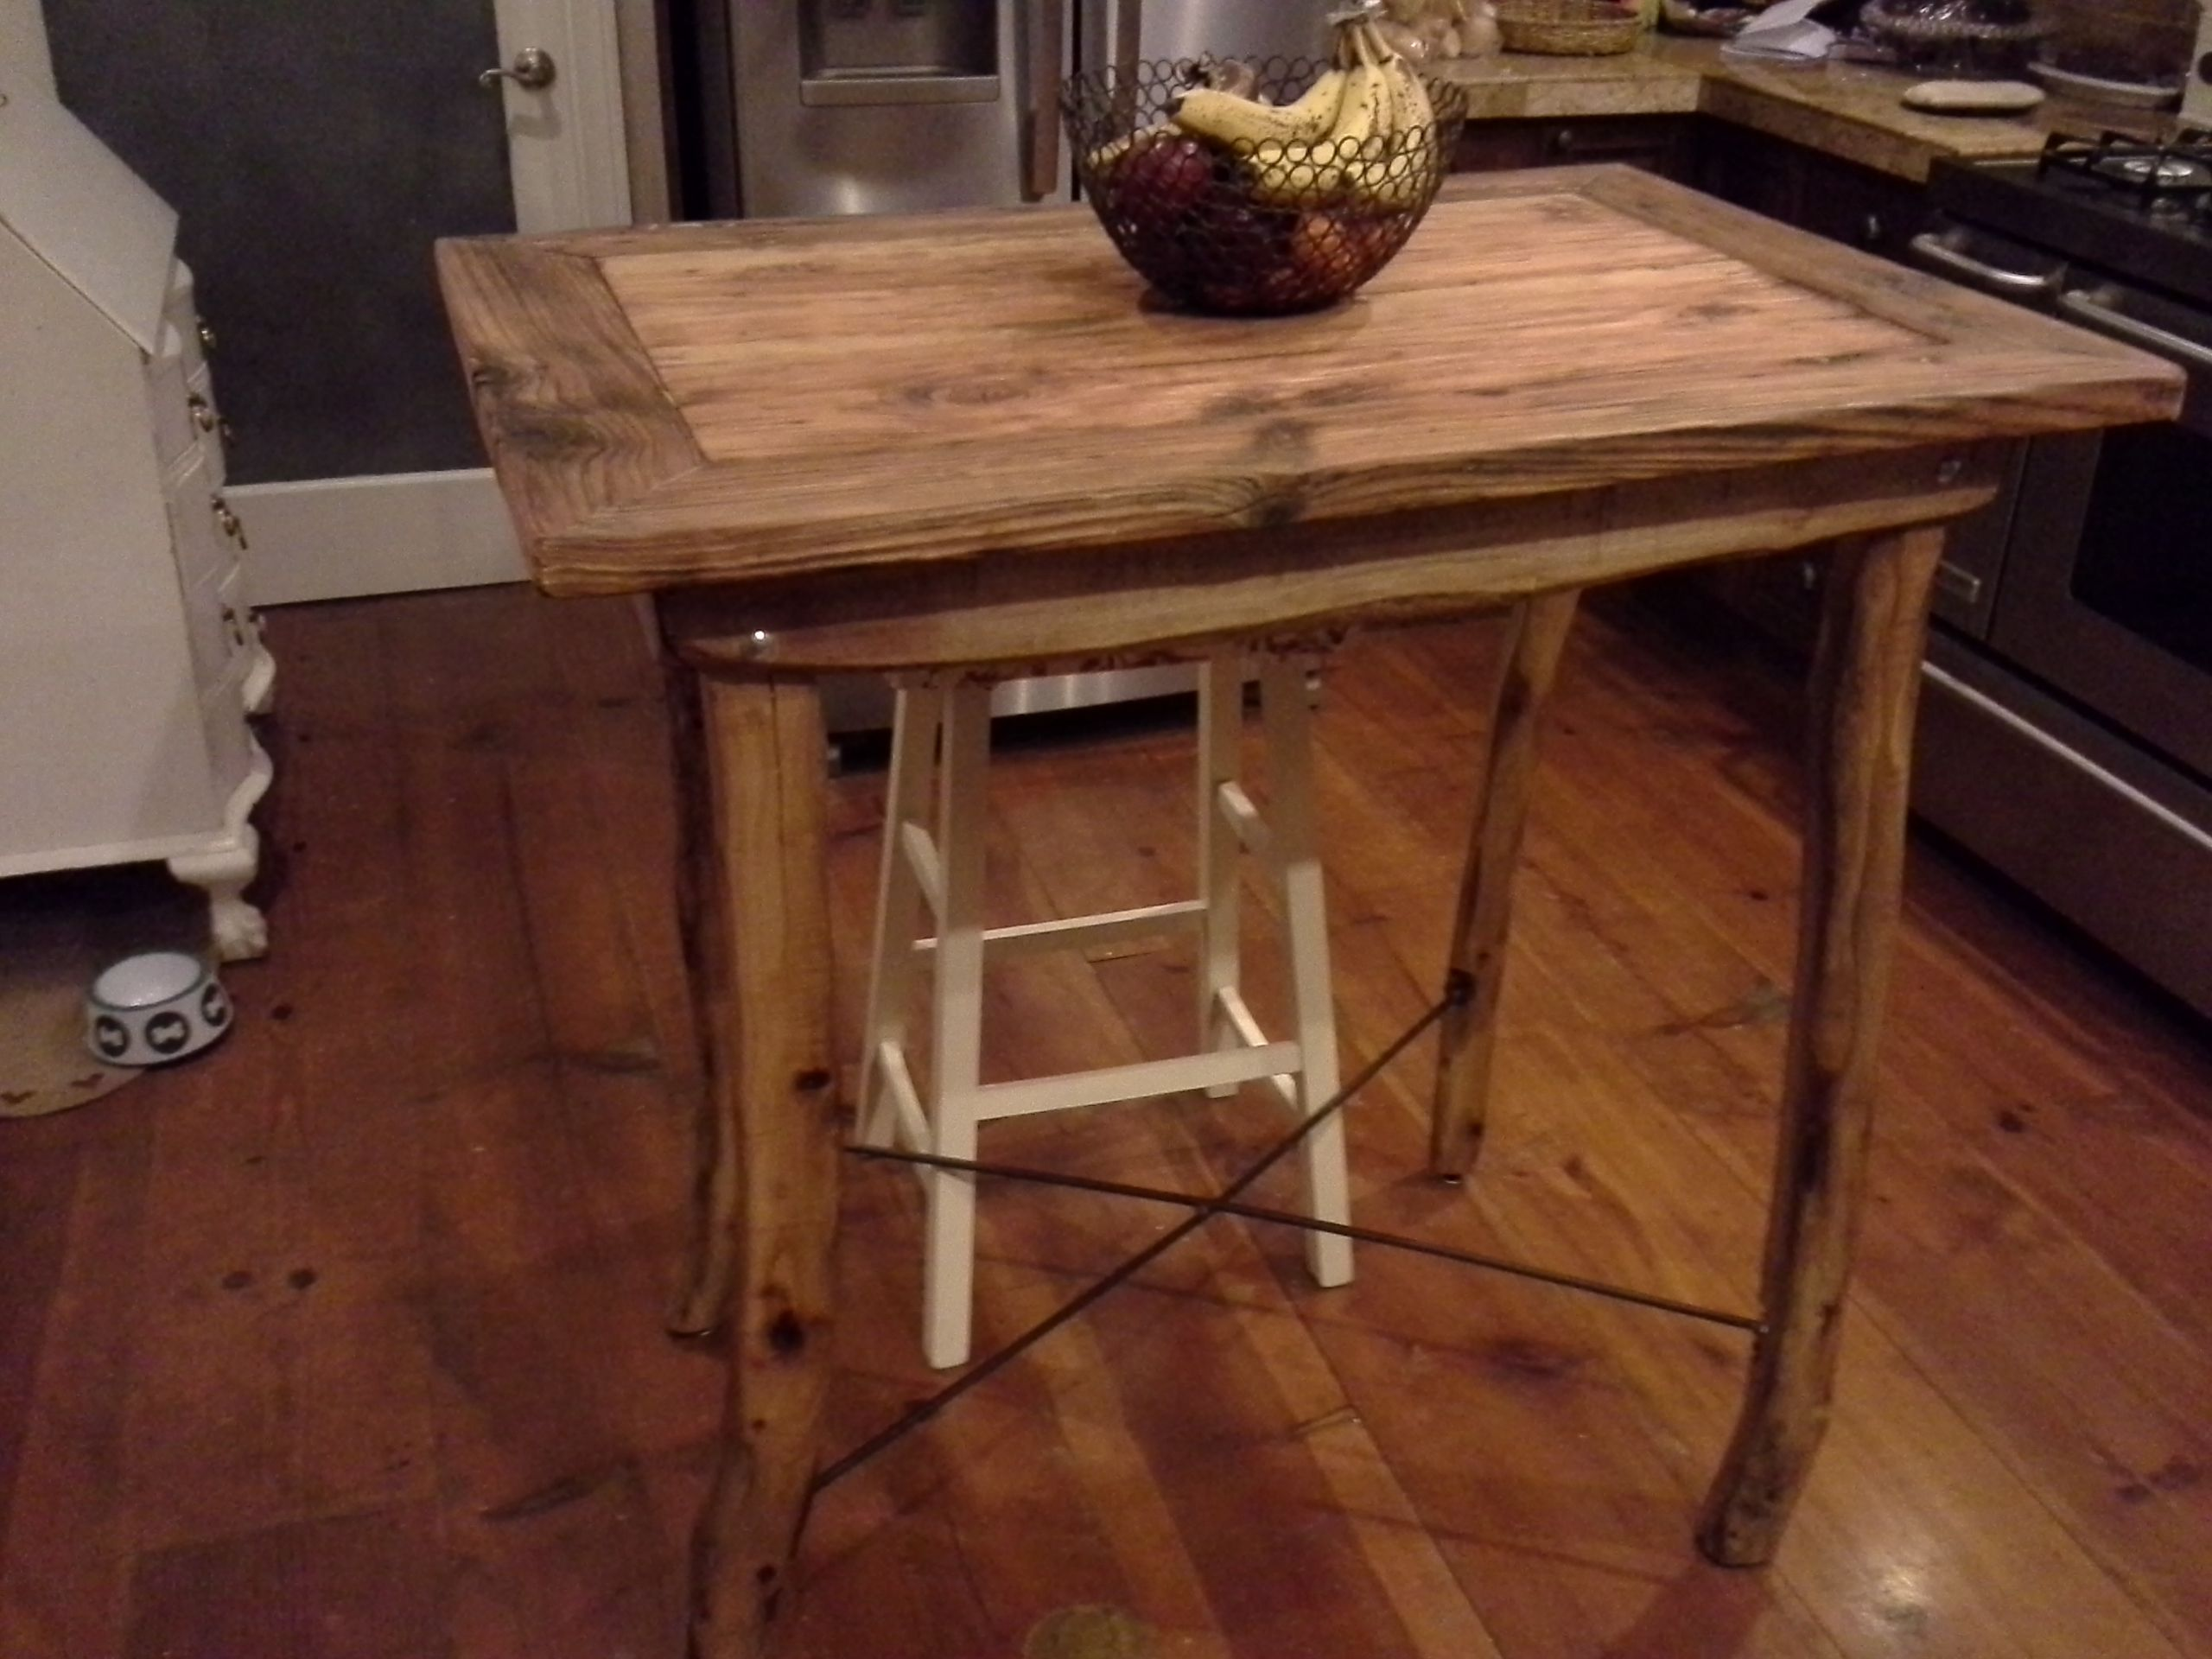 Parote wood rustic table Home decor   Rustic Tables from Wentzel Wood  Designs   Pinterest   Rustic table  Wood design and Wood. Parote wood rustic table Home decor   Rustic Tables from Wentzel